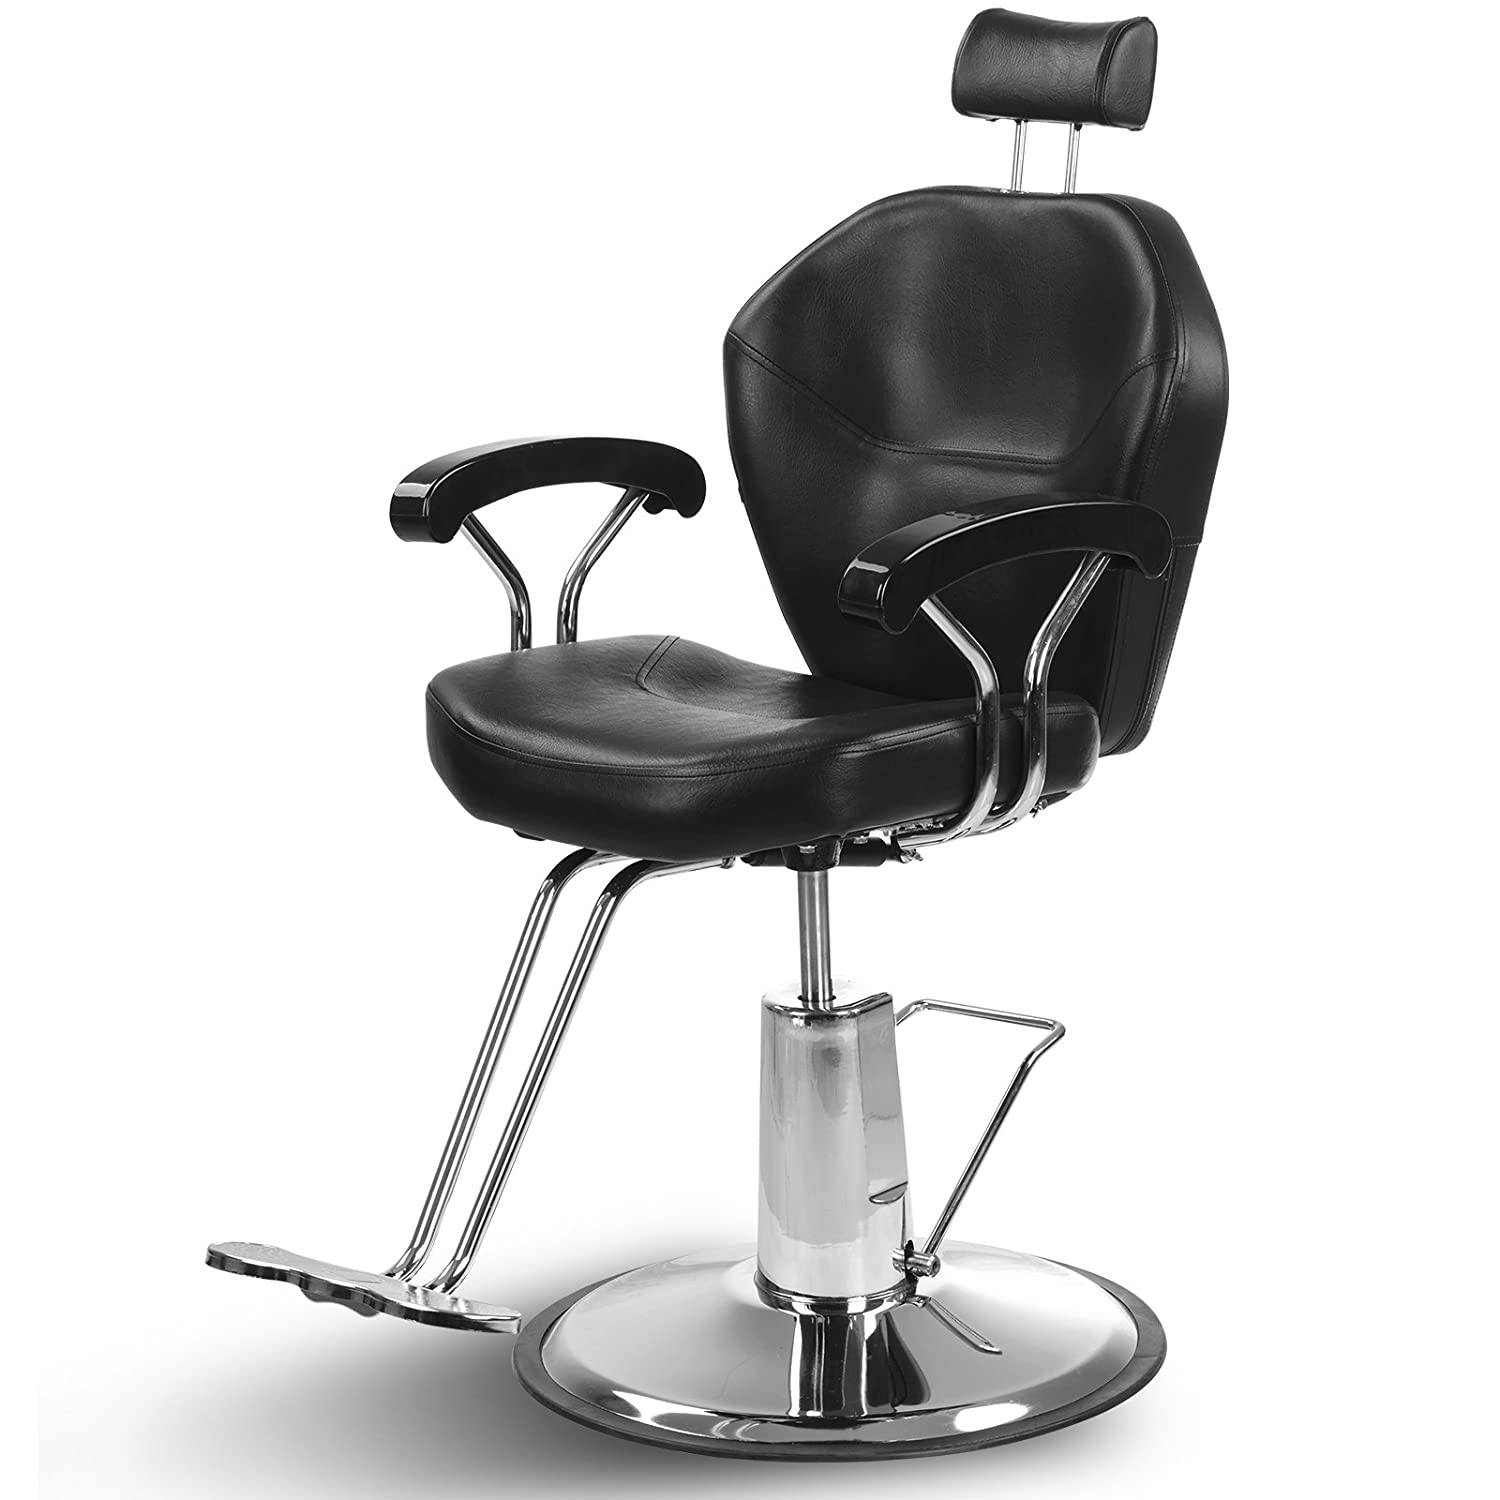 Superworth Elegance Barber Chair Hydraulic Recline Swivel Adjustable Salon Beauty Tattoo Hairdressing Shaving DongKai